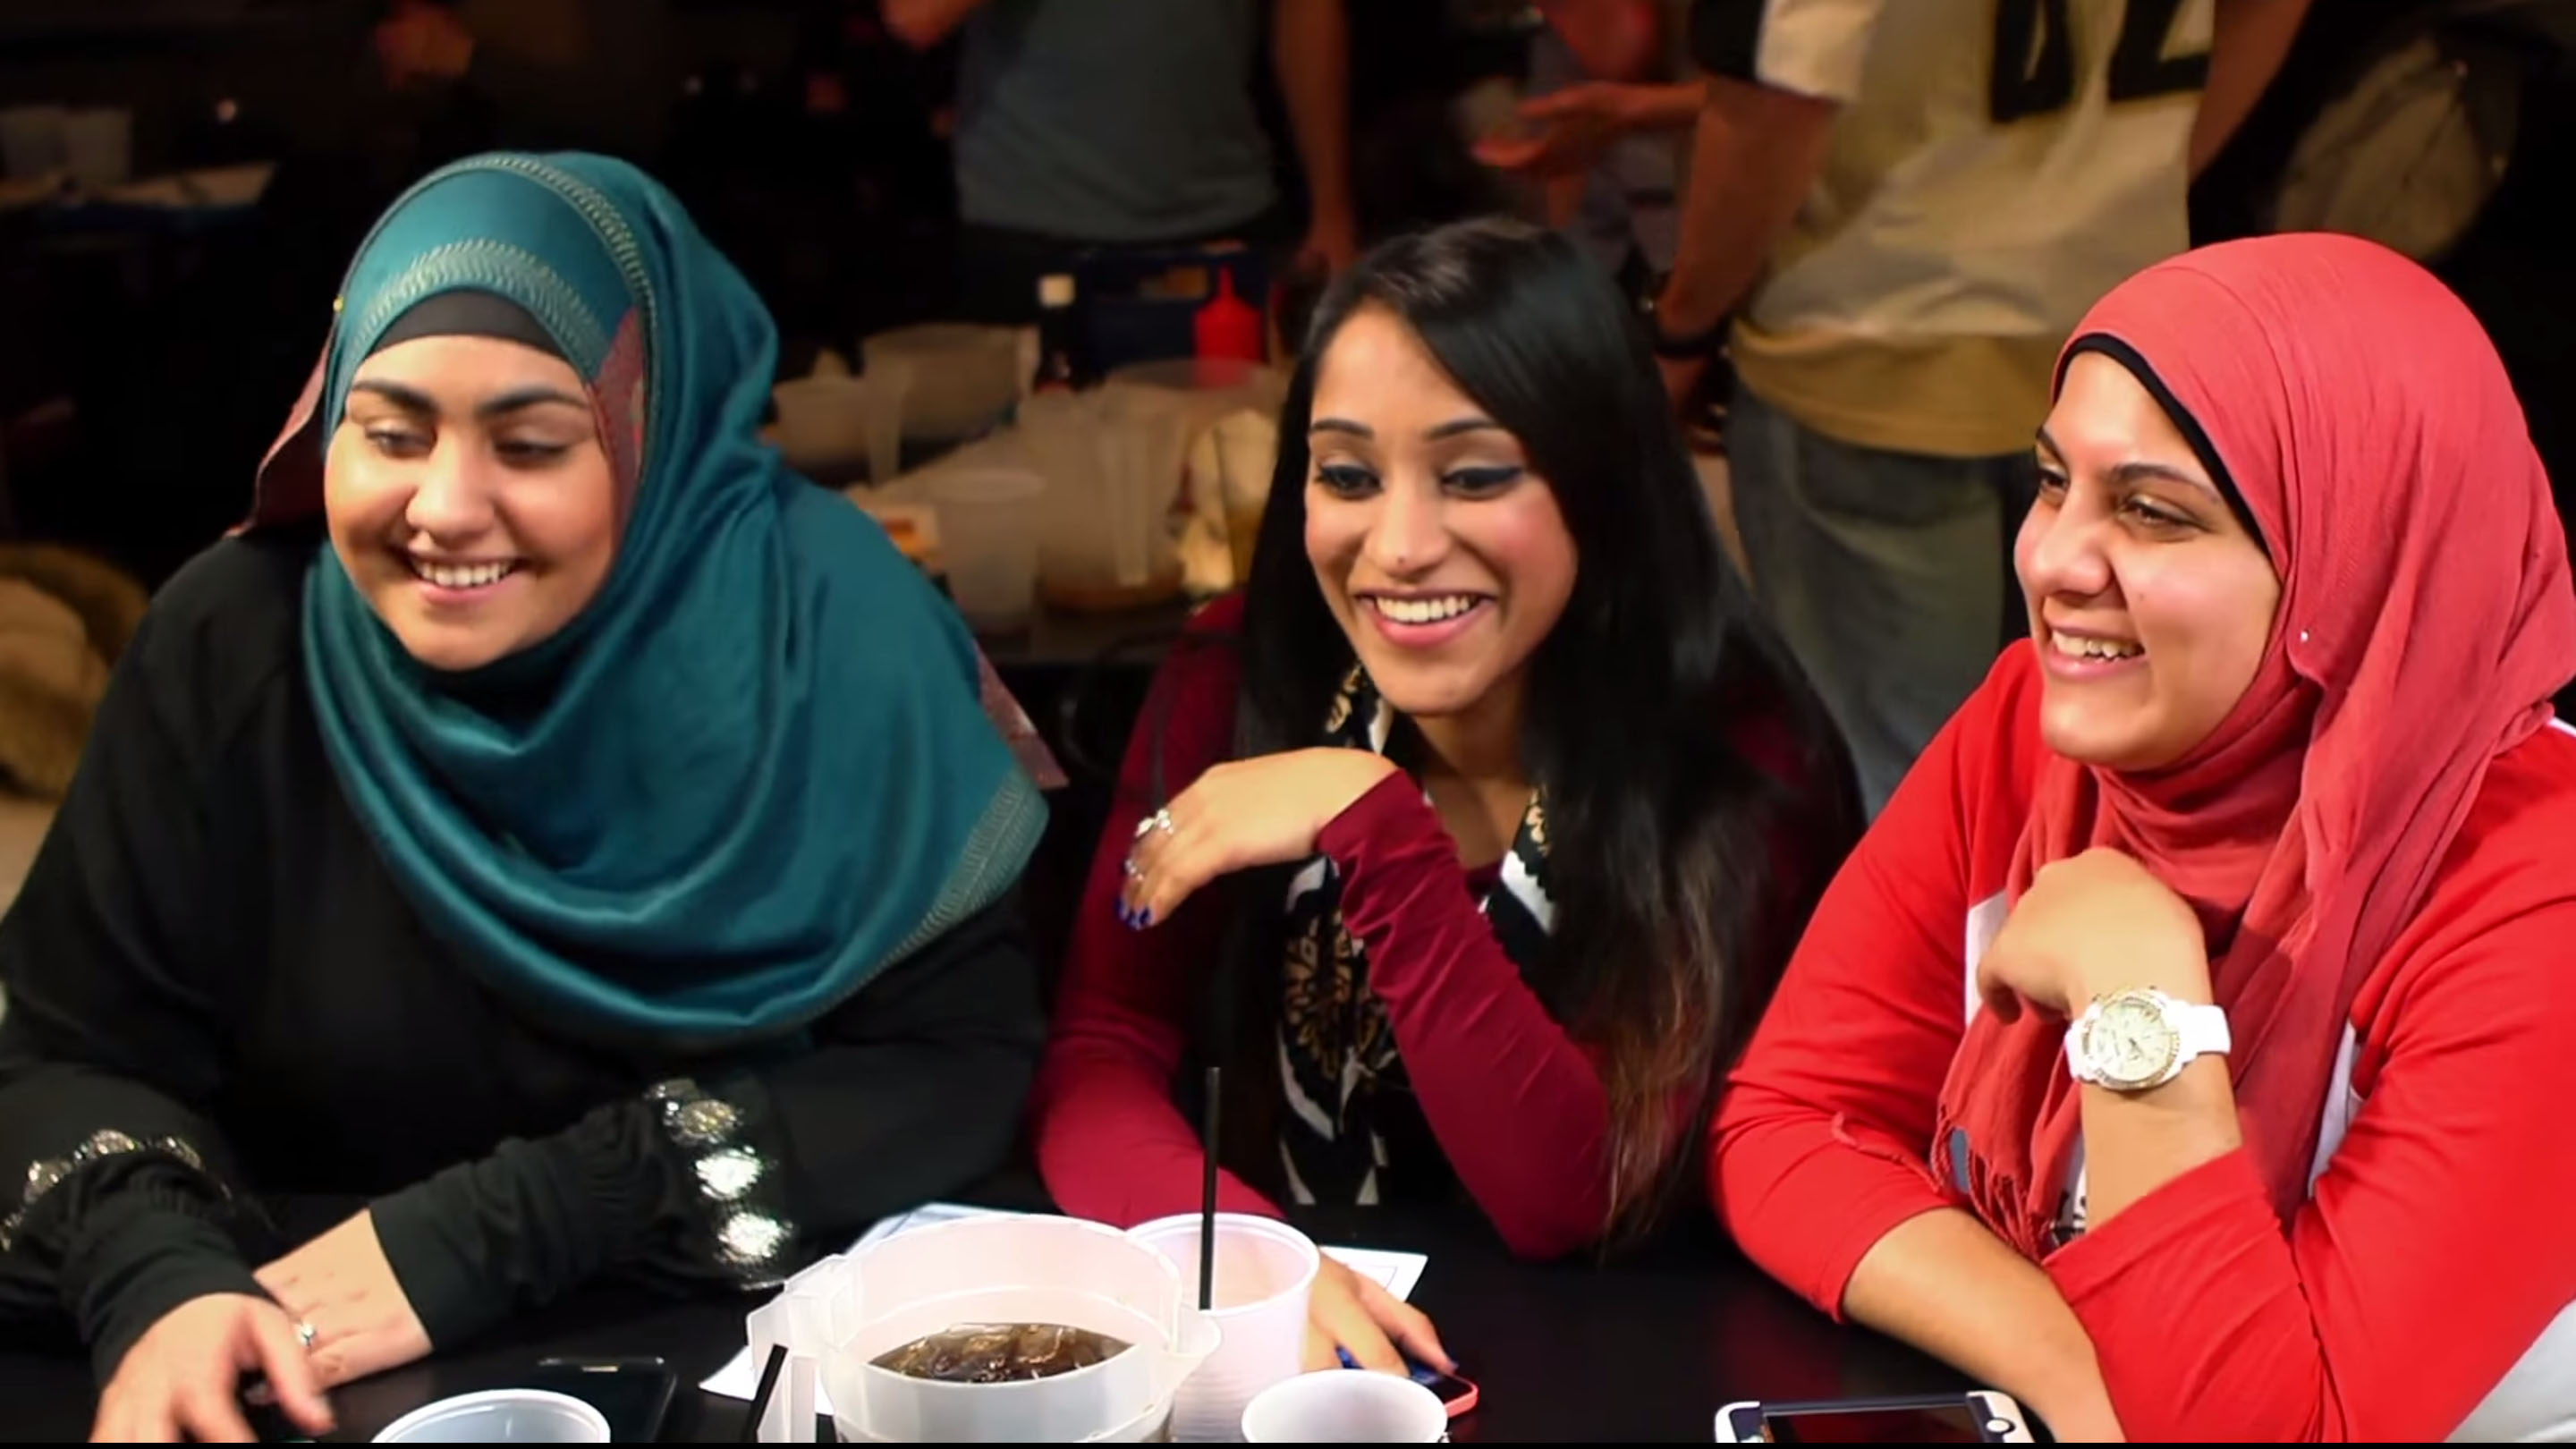 These twentysomething muslim women are clapping back against stereotypes